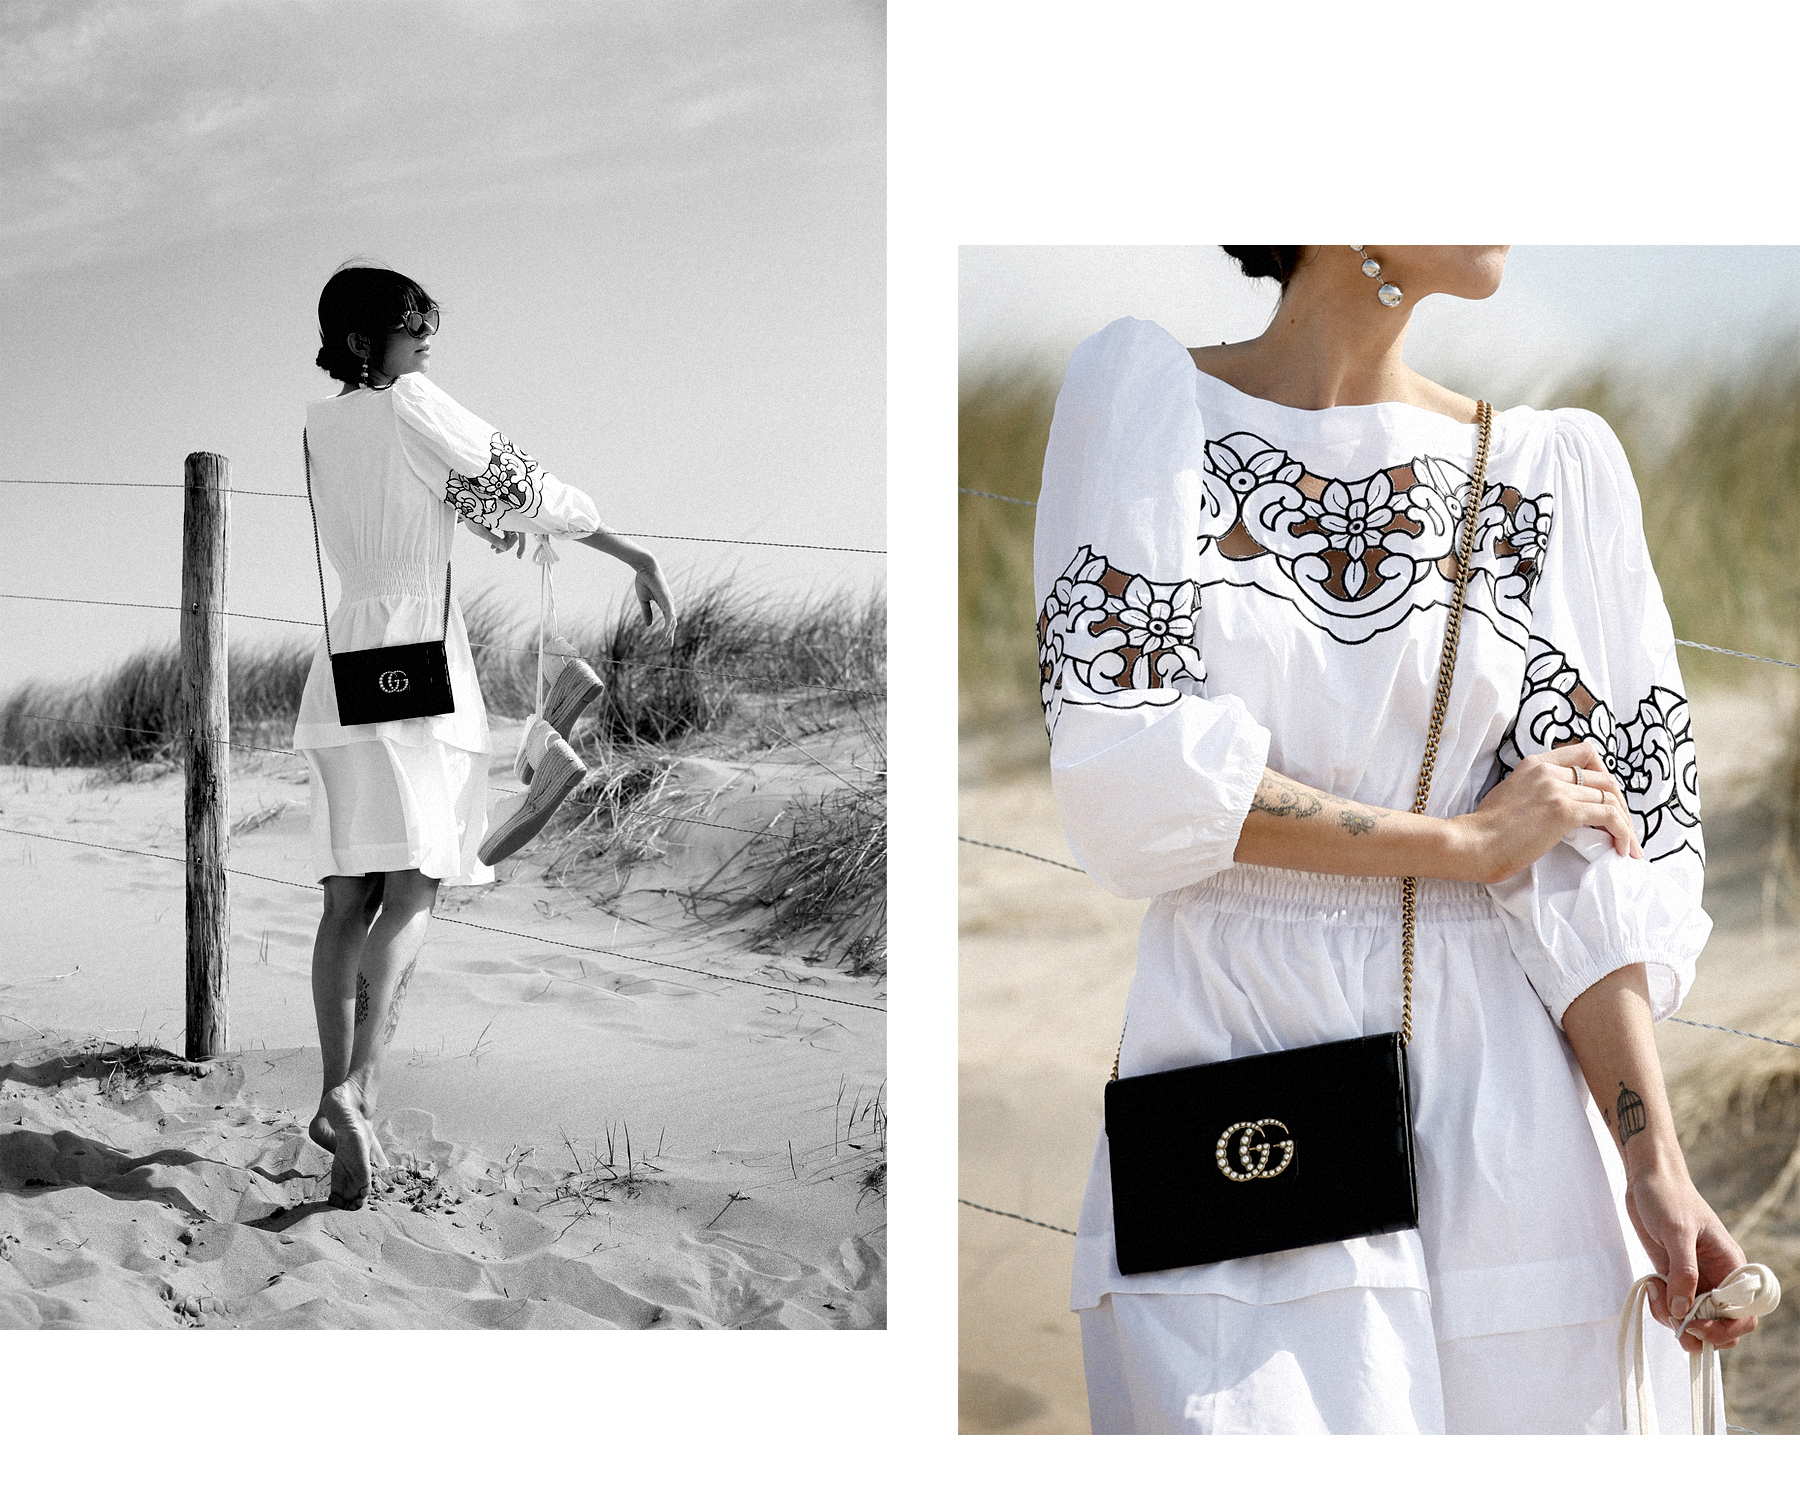 outfit breuninger pinko dress kleid gucci marmont clutch bag chain woc sunglasses blogger fashionblogger white dressing beach dunes summer holiday cats & dogs blog modeblogger ricarda schernus düsseldorf styleblogger sea ocean photography 2